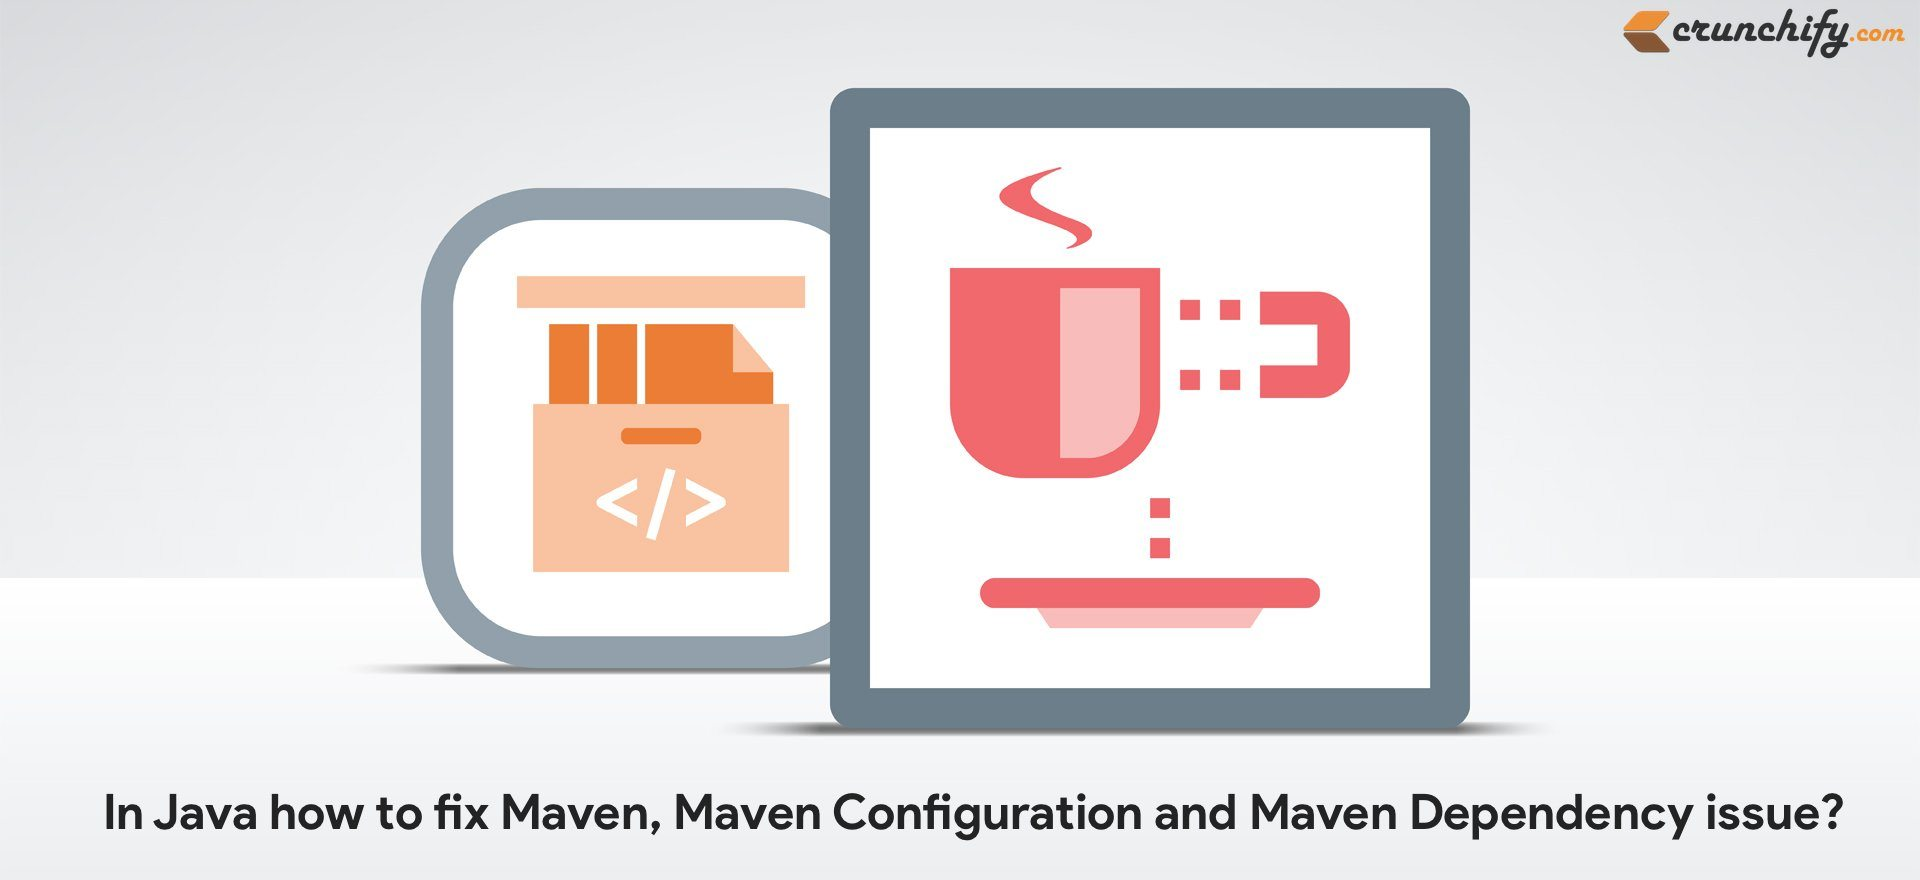 Fix any Maven issue in Eclipse: 'maven clean install' to fix